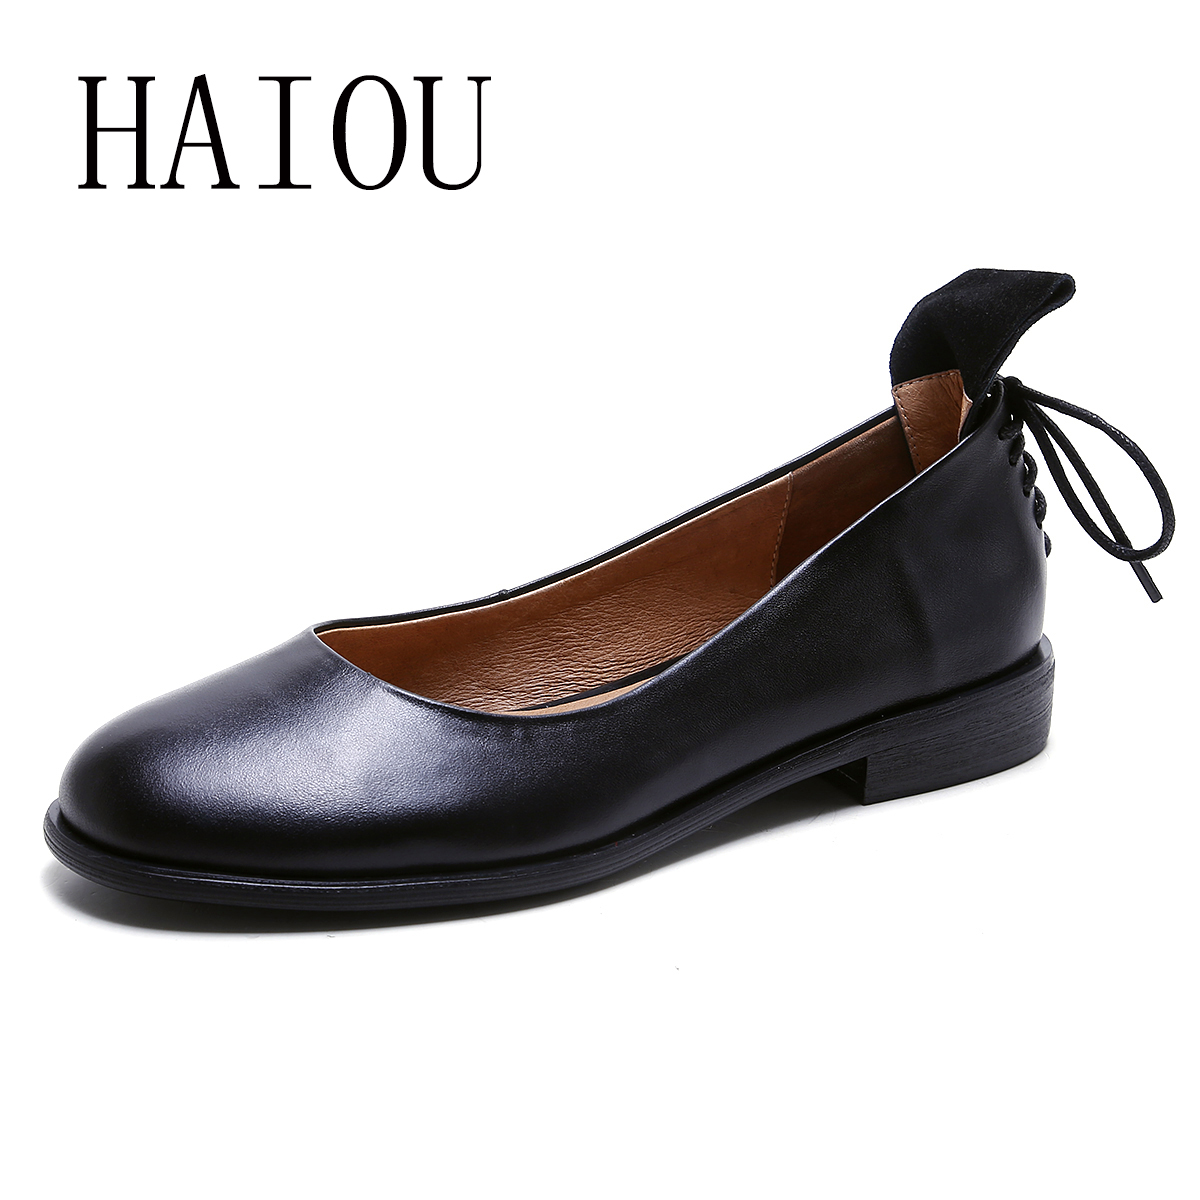 2017 Women Black Shoes Slip on Woman Genuine Leather Flat Shoes Fashion Handmade Leather Loafers Female Casual Shoes Women Flats pamasen new women s casual shoes available women flat shoes woman slip on loafers fashion female woven shoes breathable footwear